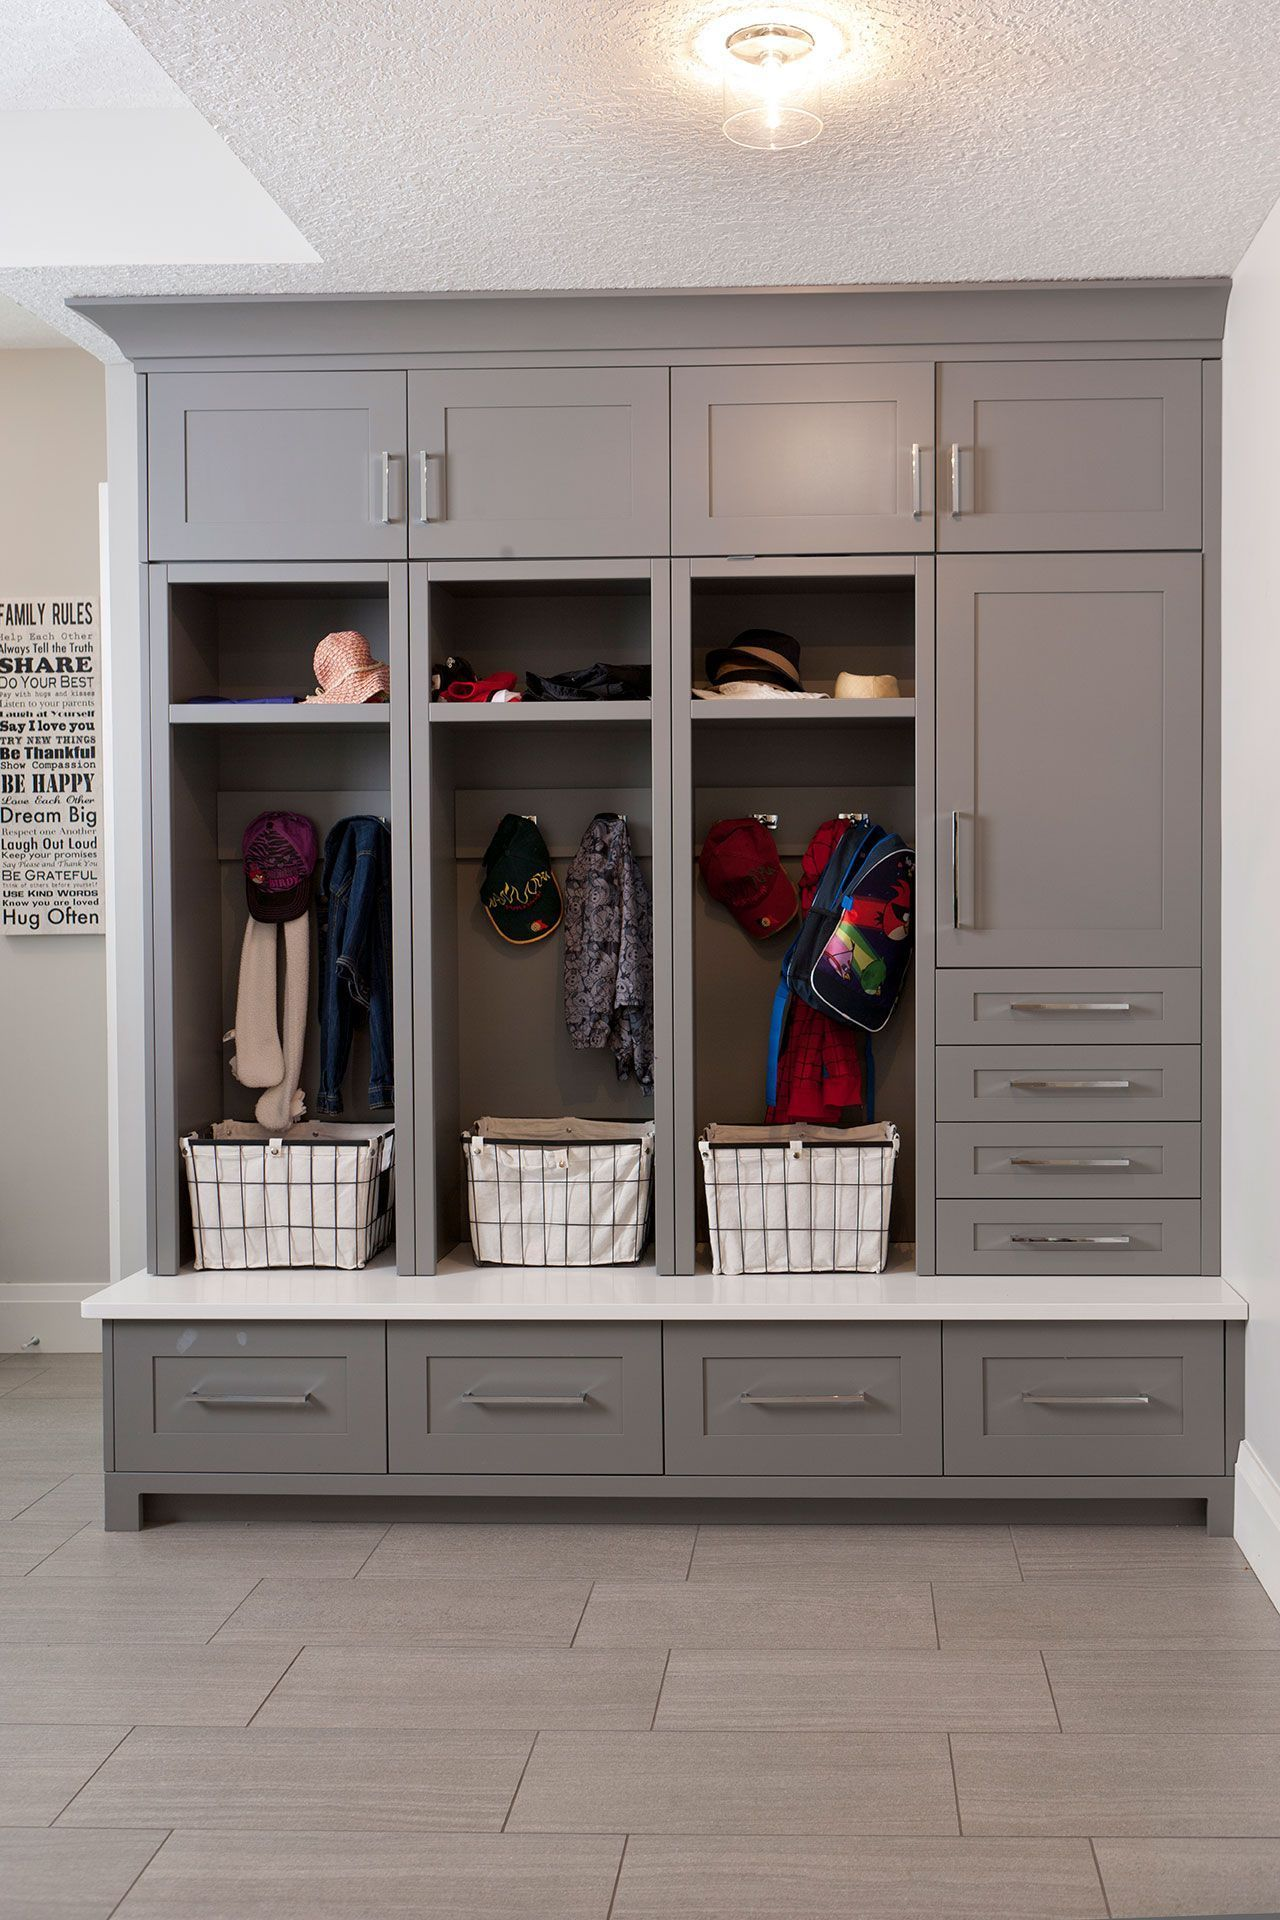 Mudroom Cabinets, Mudroom Organization, Mudroom Storage, Cubby Cabinets,  Grey Cabinetry, Modern